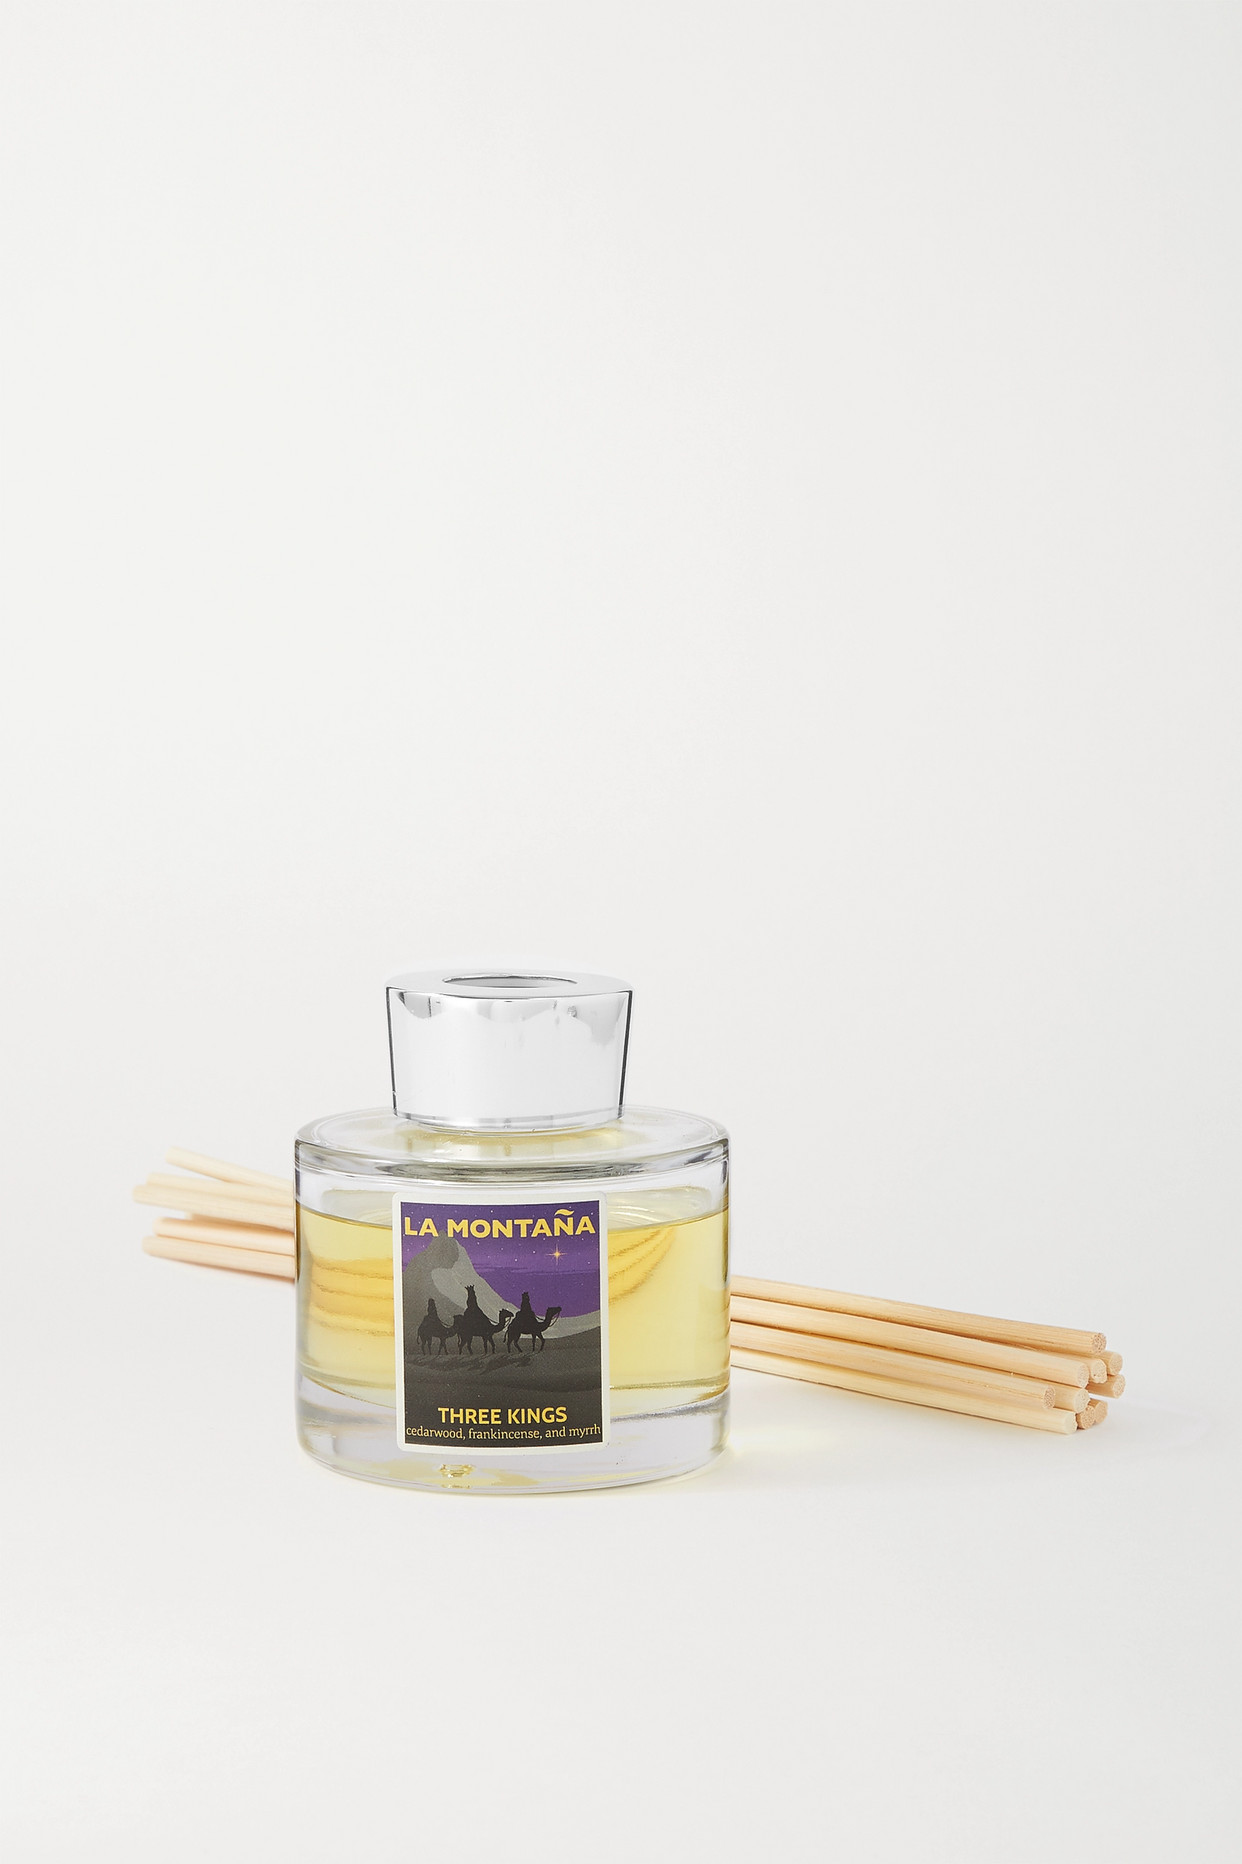 LA MONTAÑA - Reed Diffuser - Three Kings, 120ml - one size